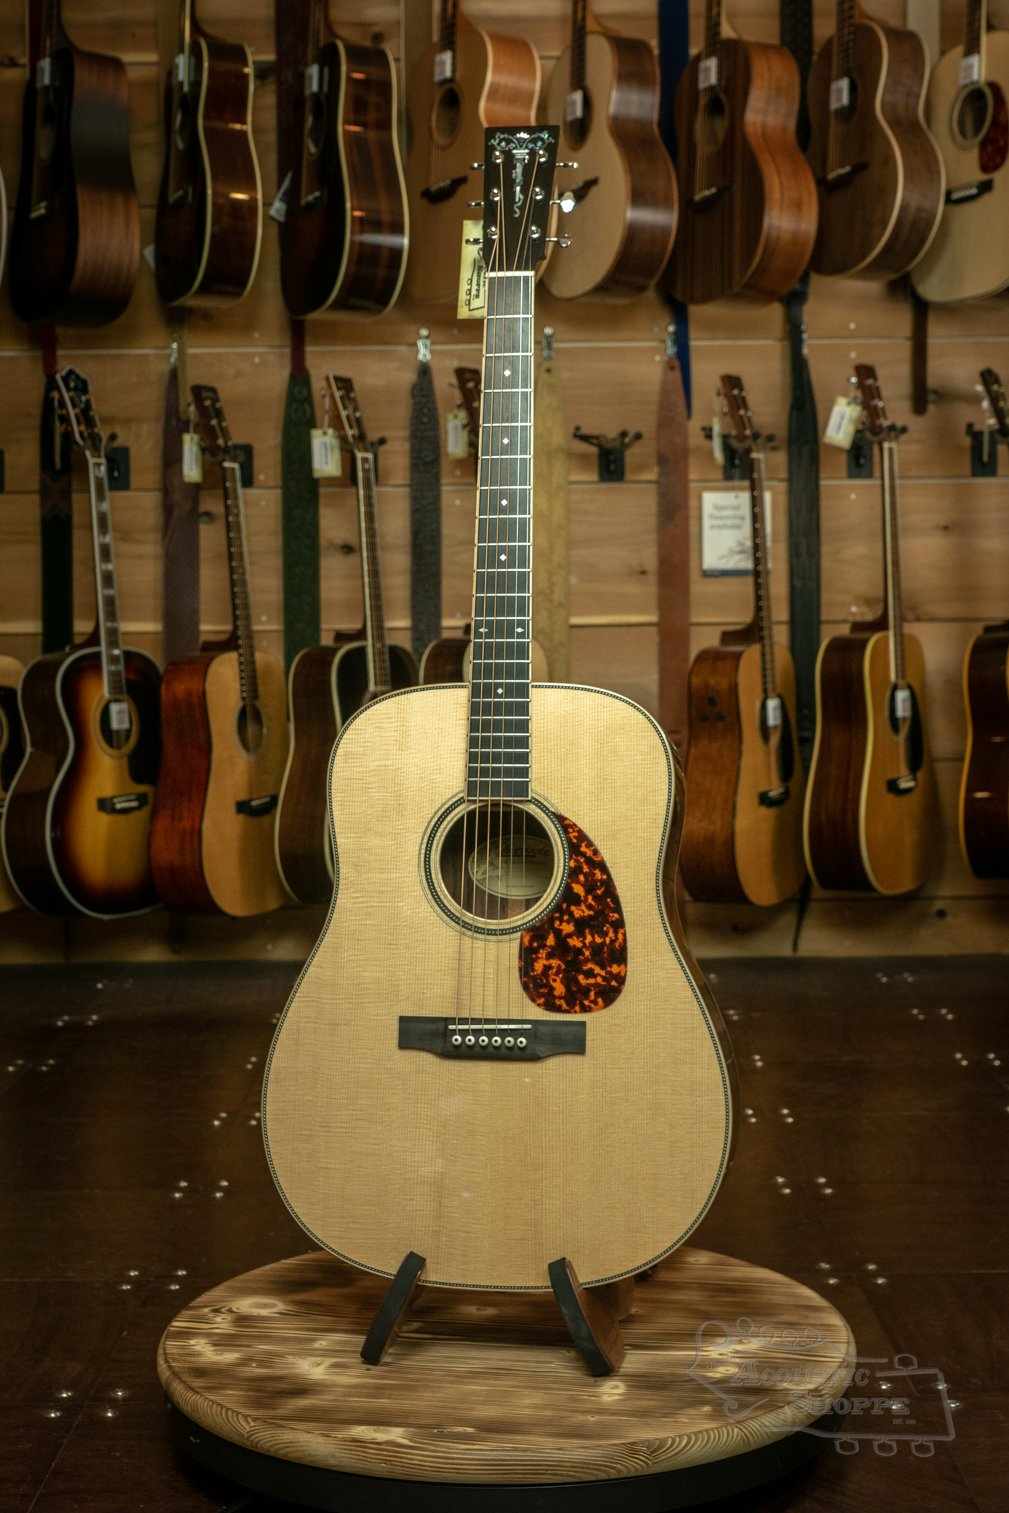 Larrivee D-44 Indian Rosewood Legacy Series Dreadnaught Acoustic Guitar with Torch Headstock Inlay #3197